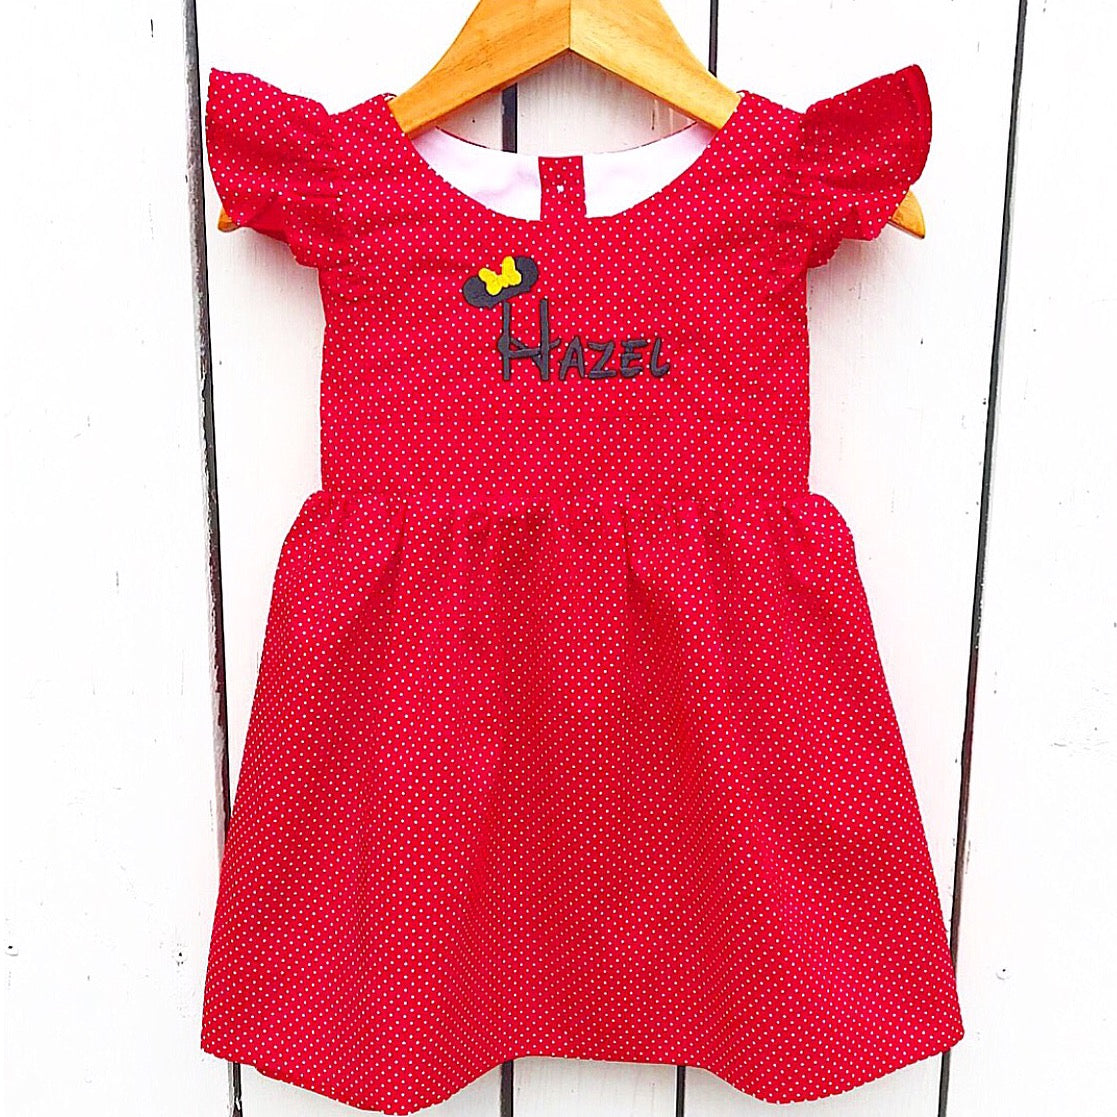 Red Personalized Pinafore Dress with Disney Minnie Mouse Embroidery